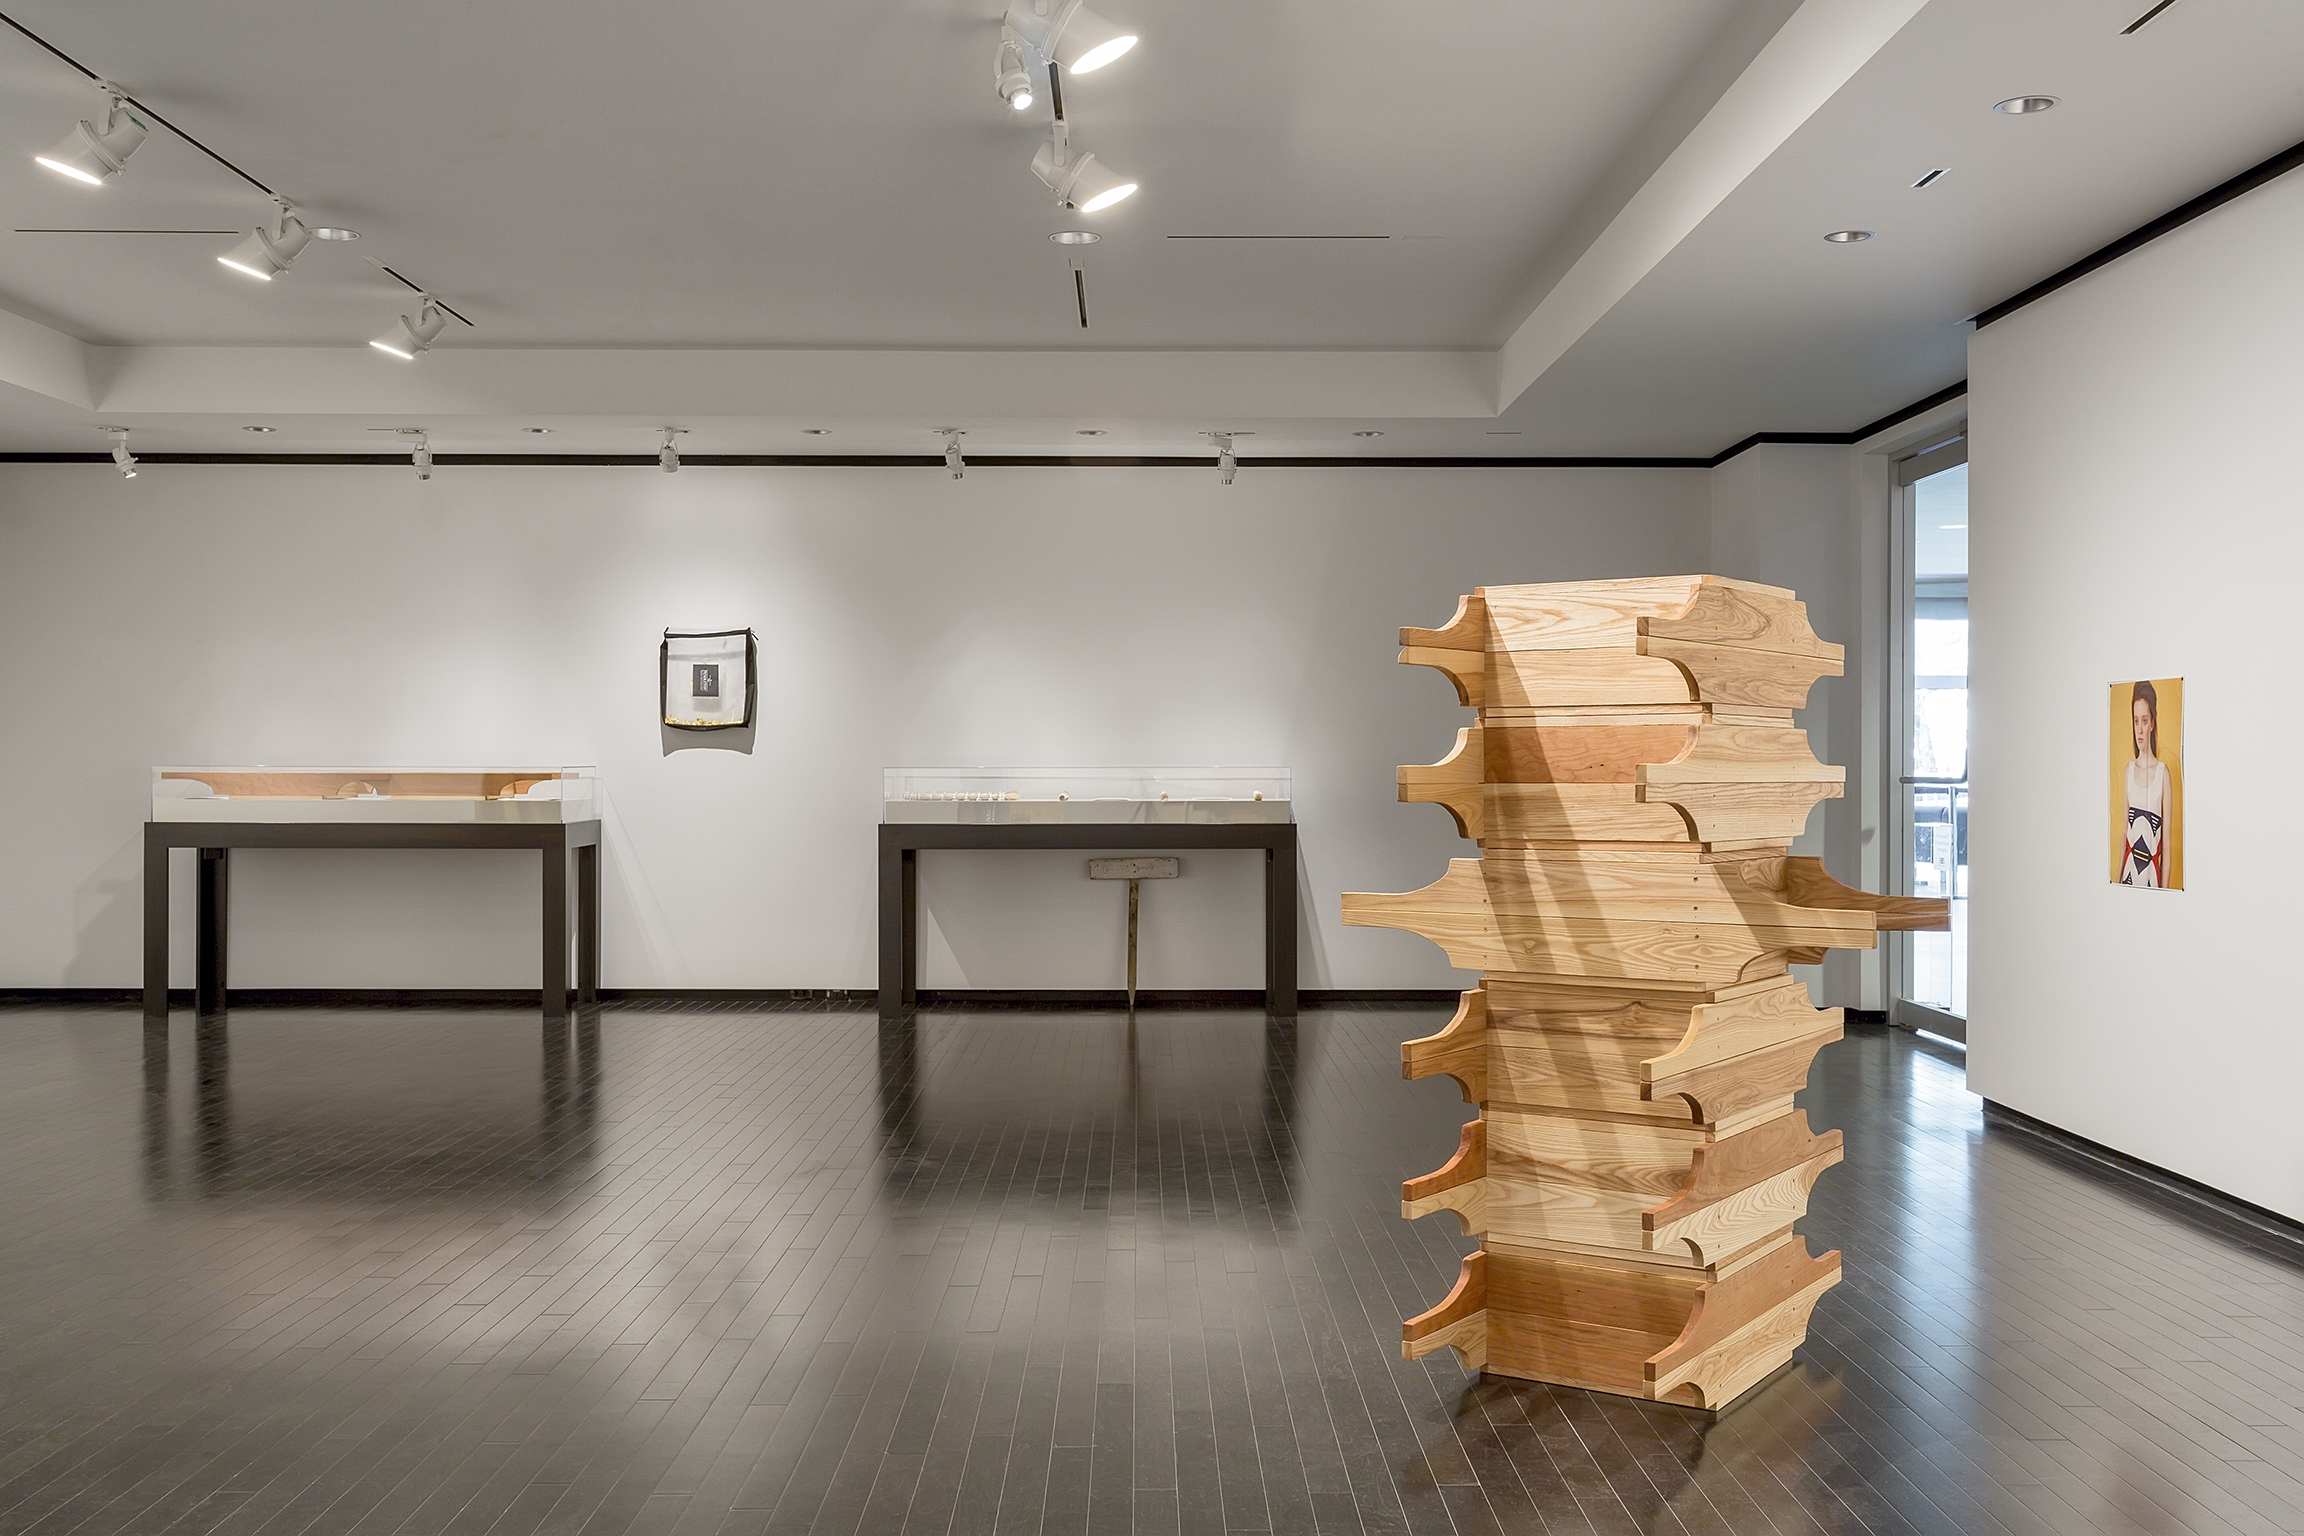 Tanya Lukin Linklater, Horse Hair Question 1, 2016, wood, hardware, screen, horse hair bundles, cotton, antler velvet, drywall, steel studs, dimensions variable. Installation view, A Parallel Excavation, Art Gallery of Alberta, Edmonton, Canada, 2016 by